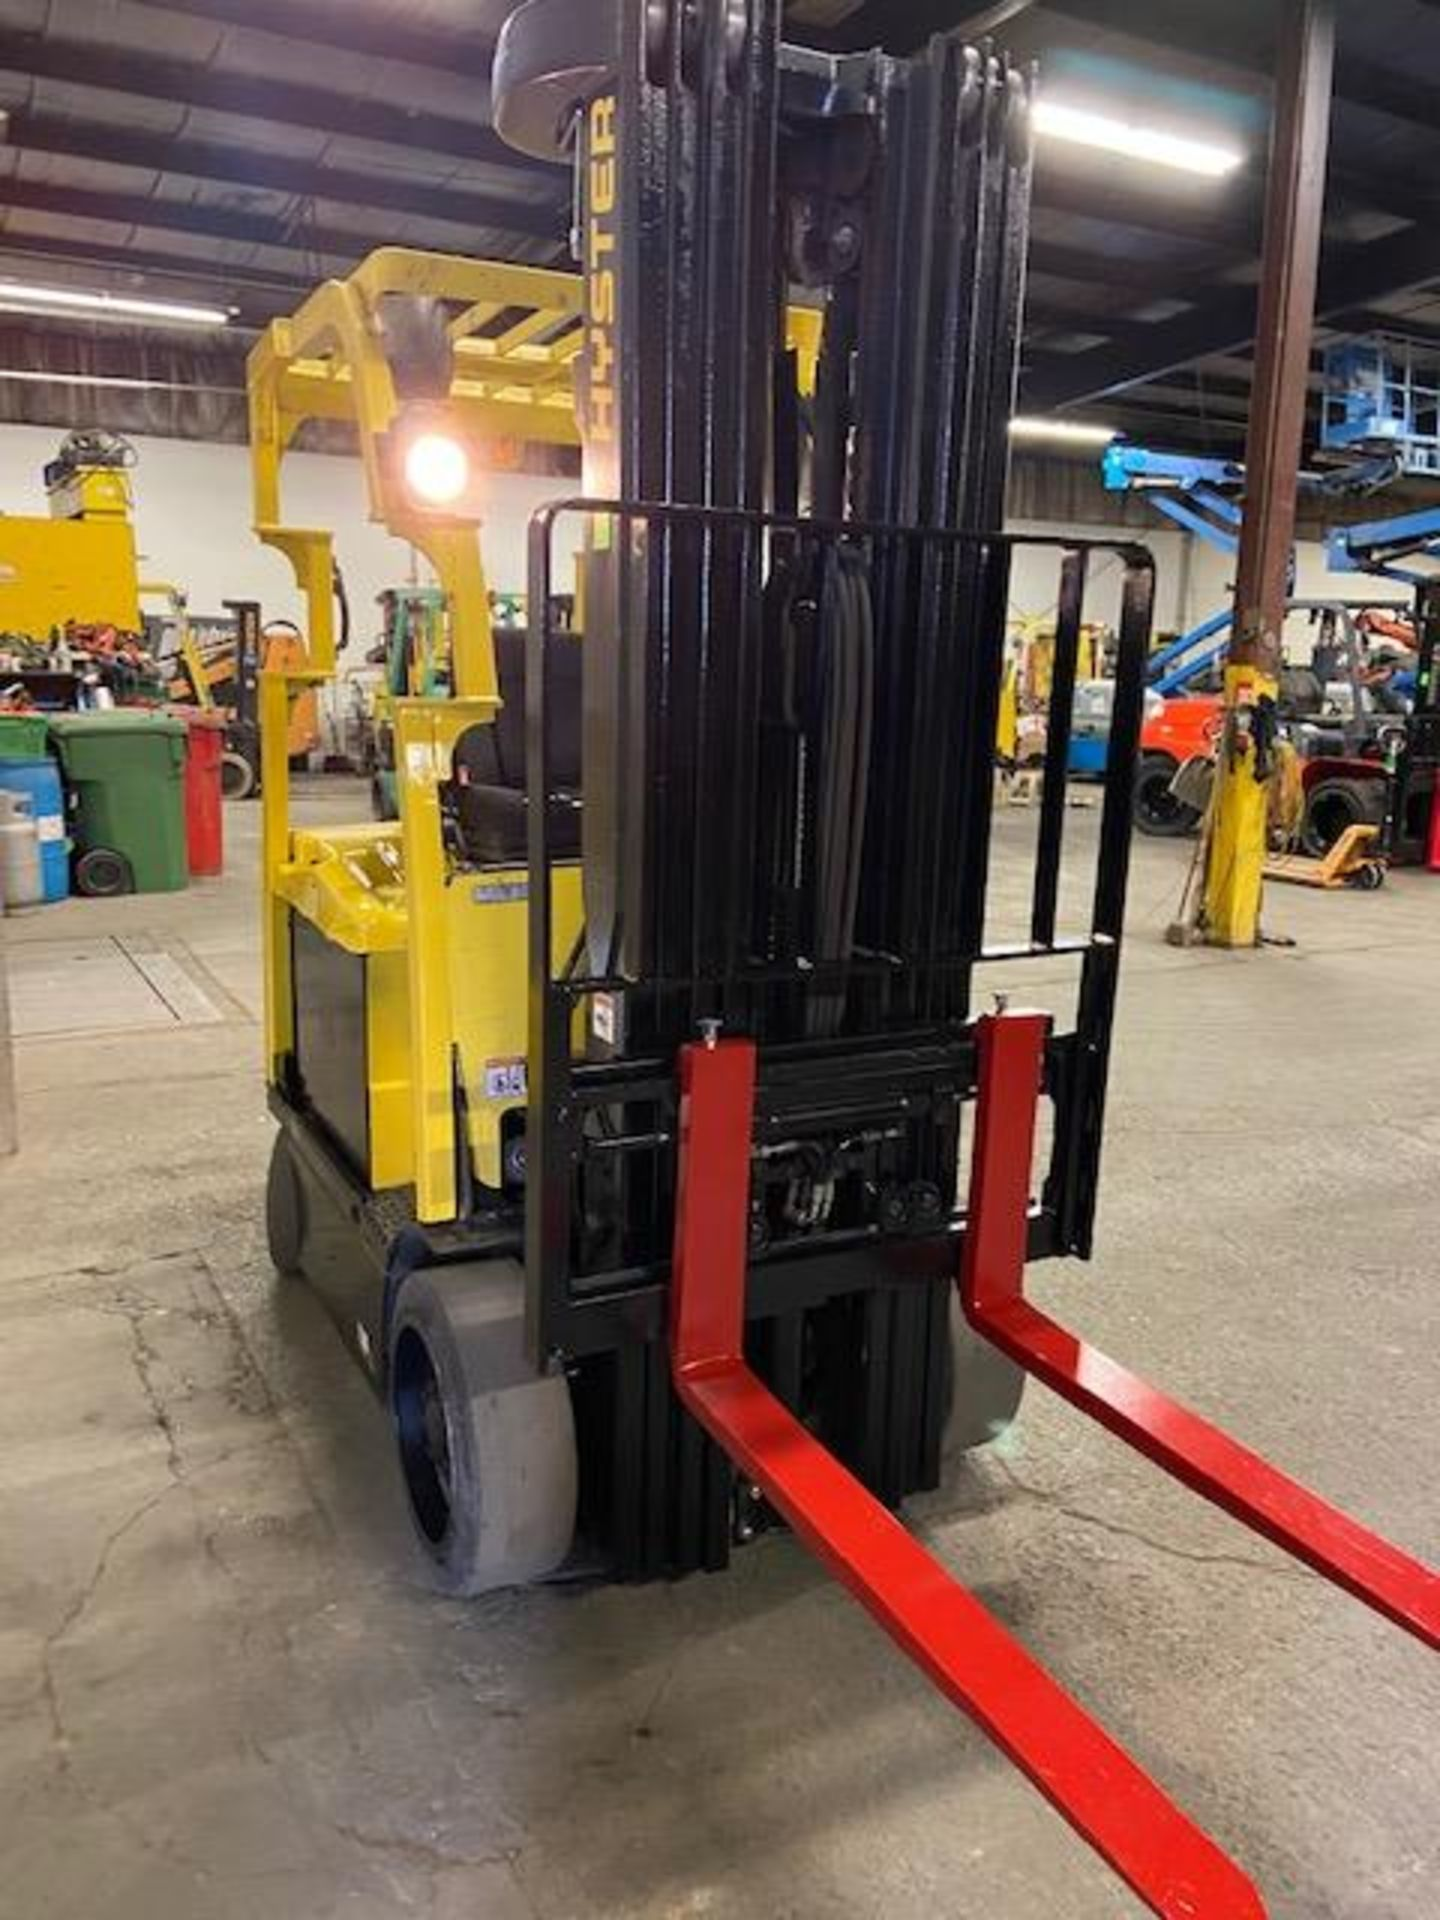 FREE CUSTOMS - 2013 Hyster 5000lbs Capacity Forklift Electric with 4-stage mast with sideshift and - Image 2 of 3